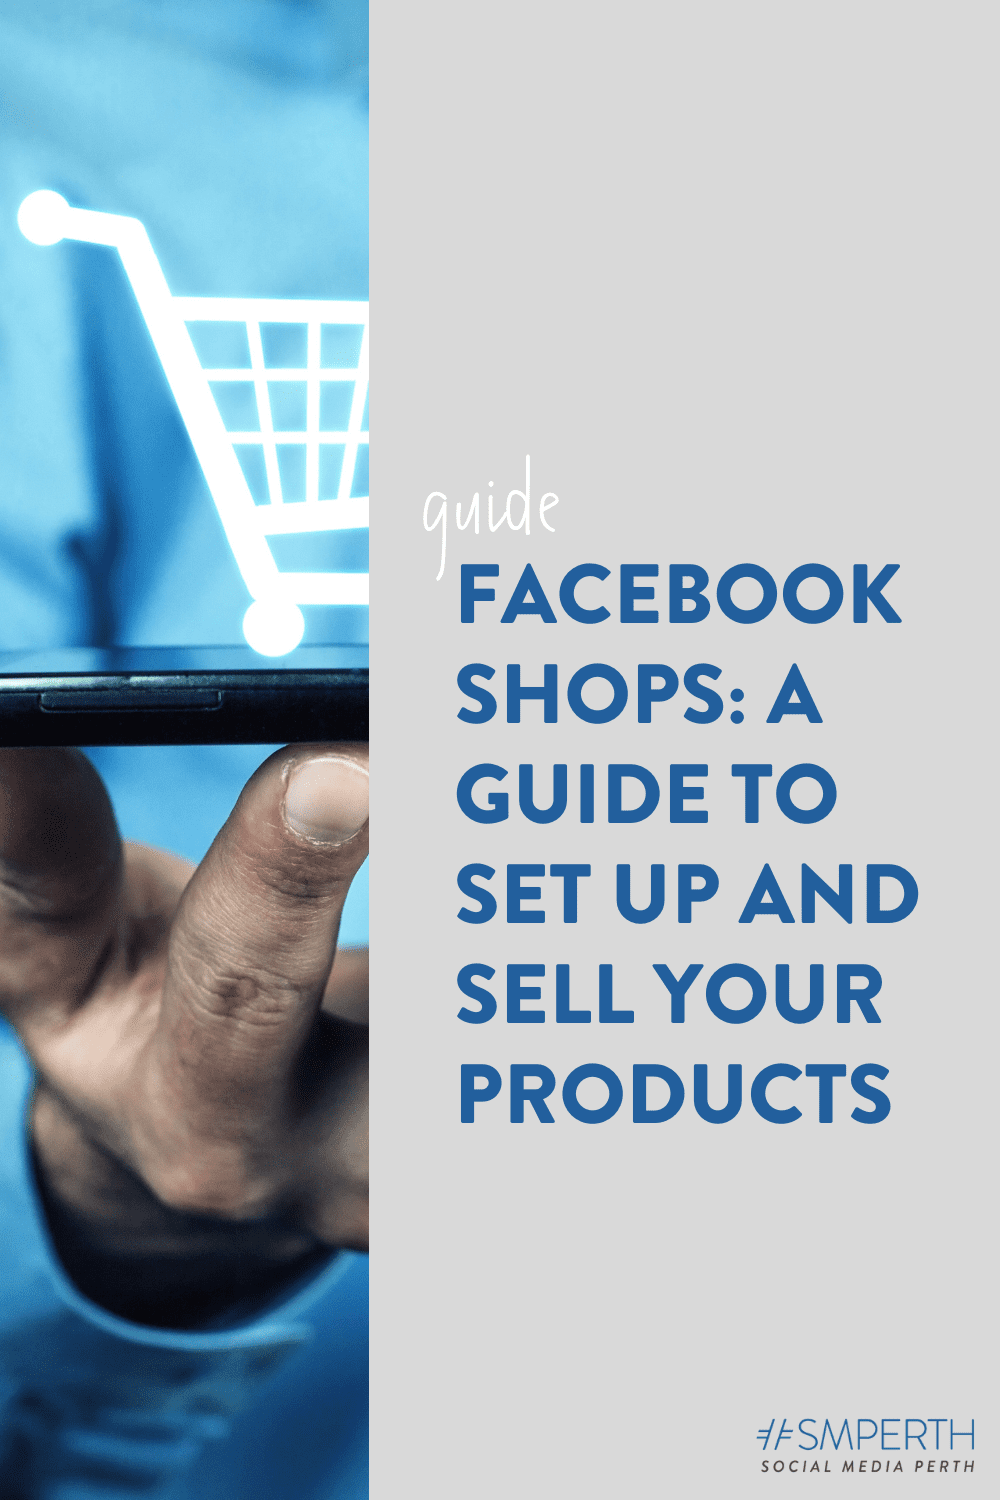 Facebook Shops: A Guide to Set Up and Sell Your Products